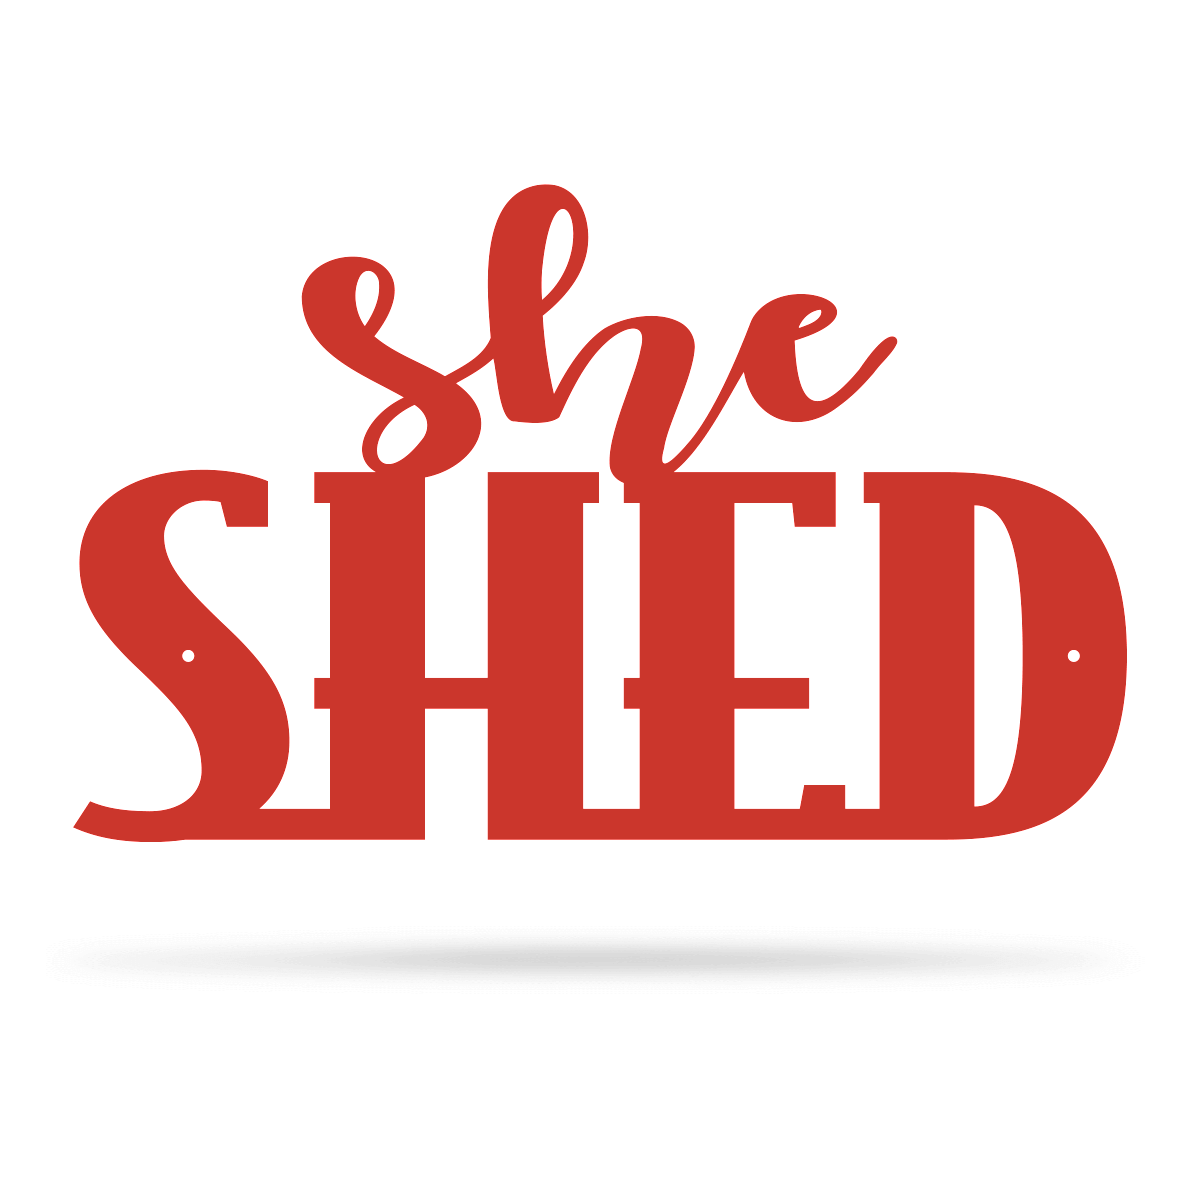 "She Shed Wall Art 7.5""x12"" / Red - RealSteel Center"